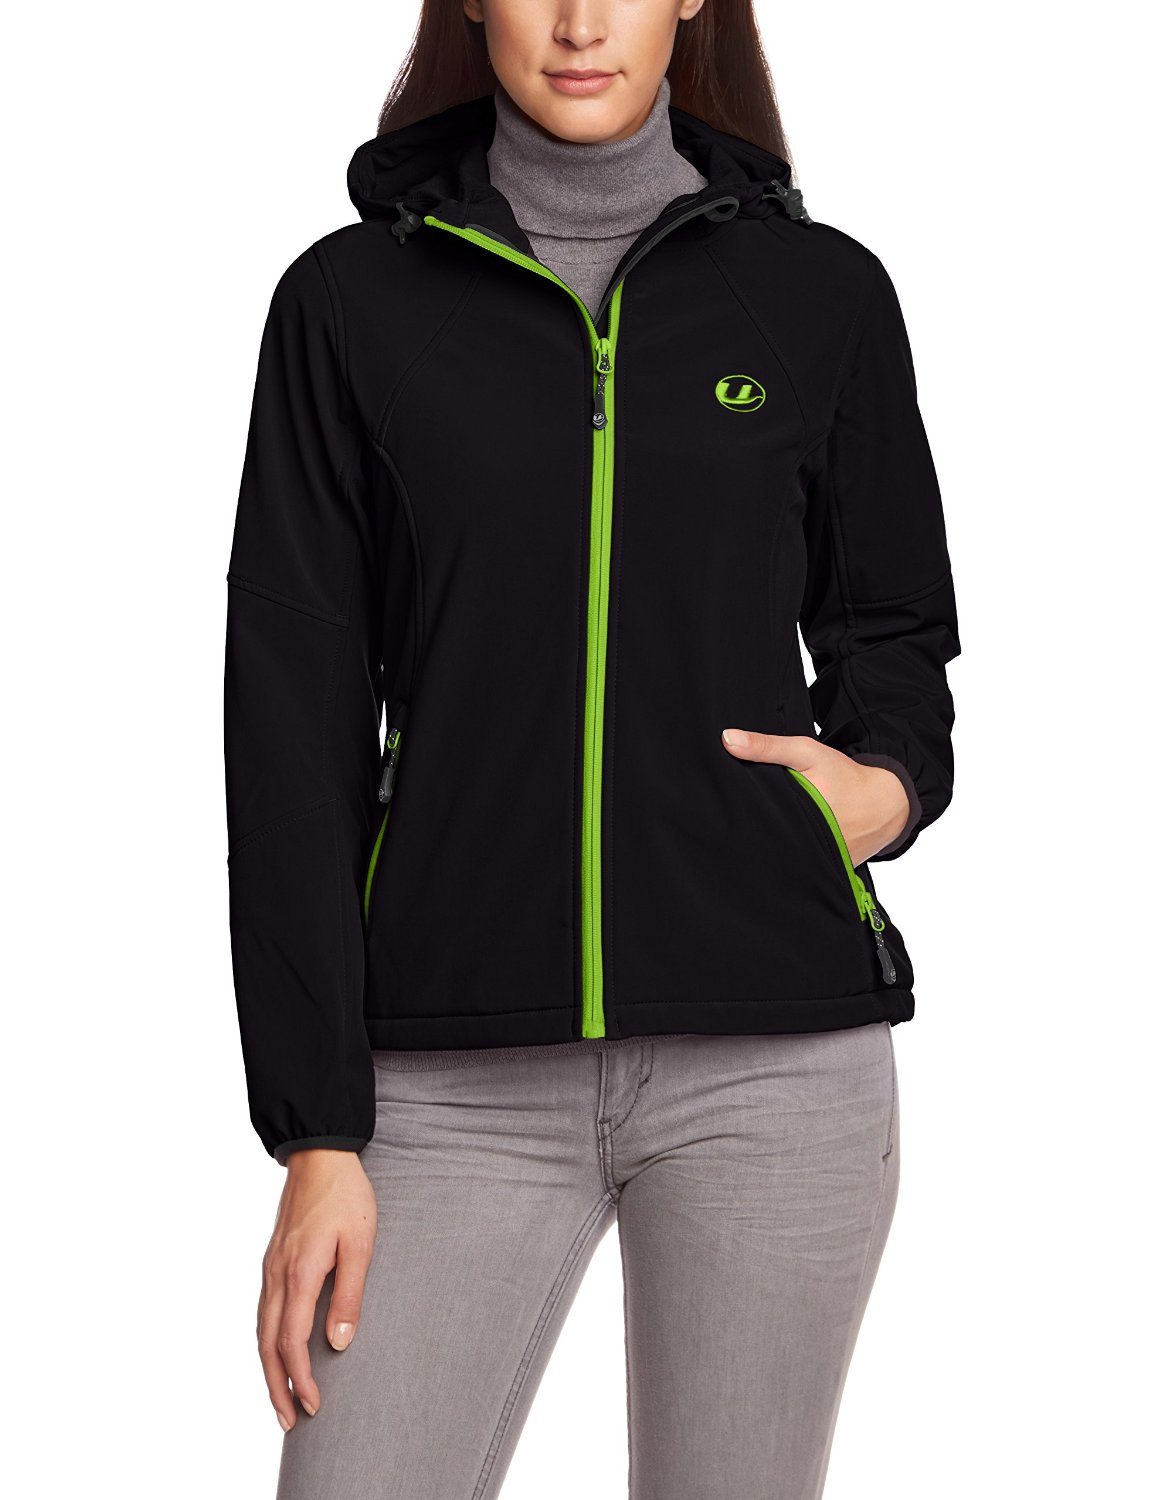 Ultrasport-Funktions-Outdoorjacke-test-damen